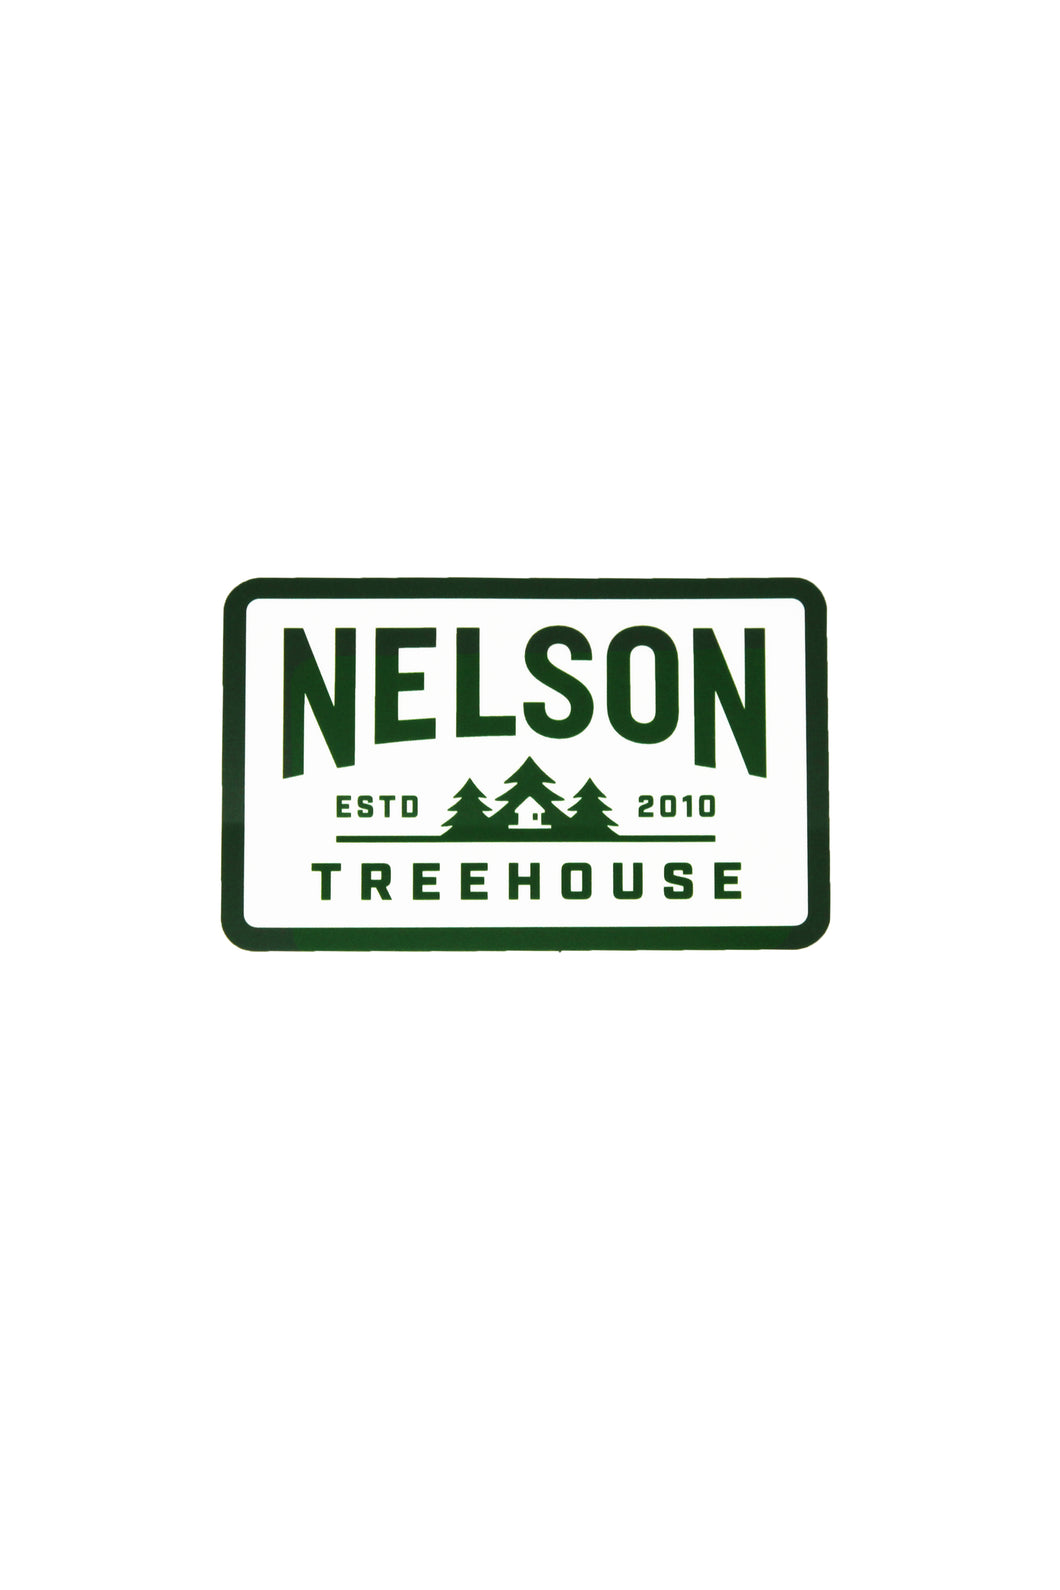 NEW Nelson Treehouse Sticker